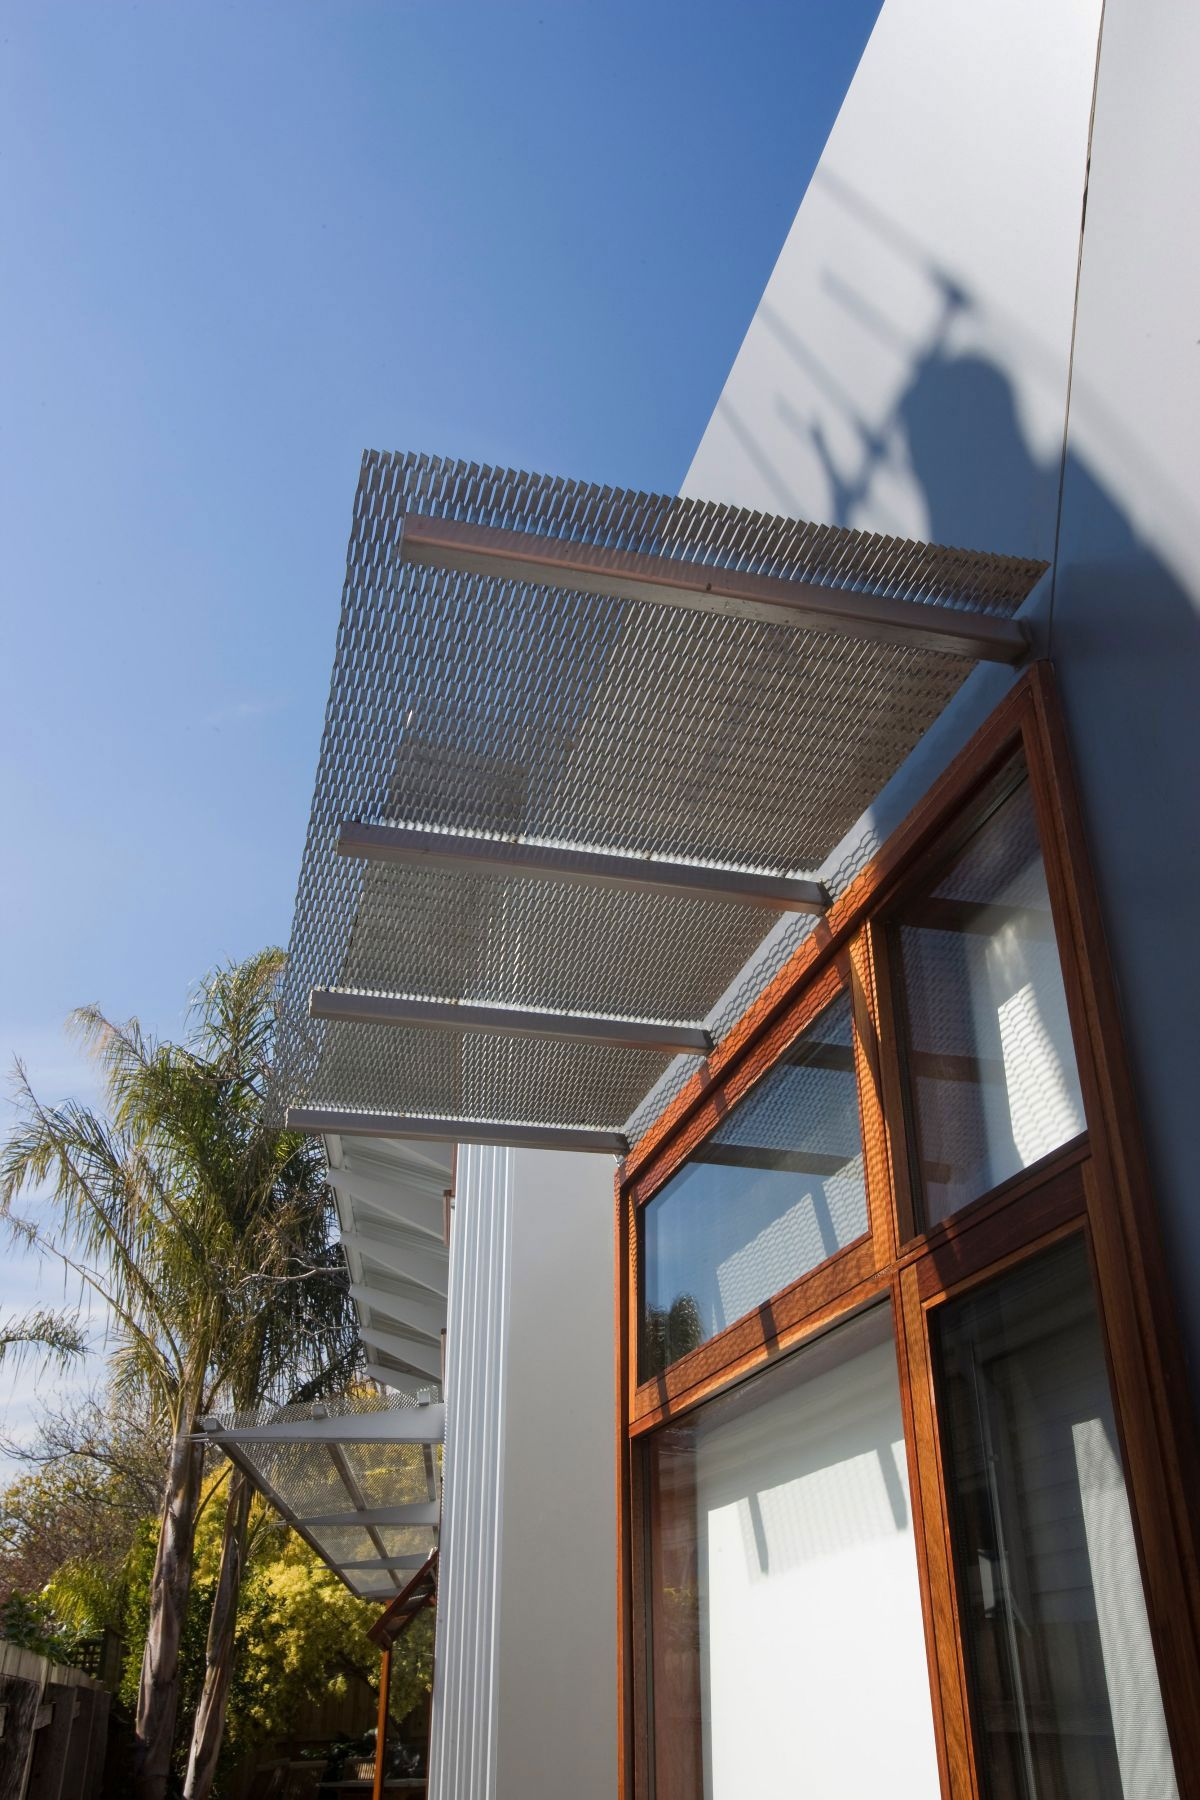 Modern Single House Design With Steel Mesh Awnings And